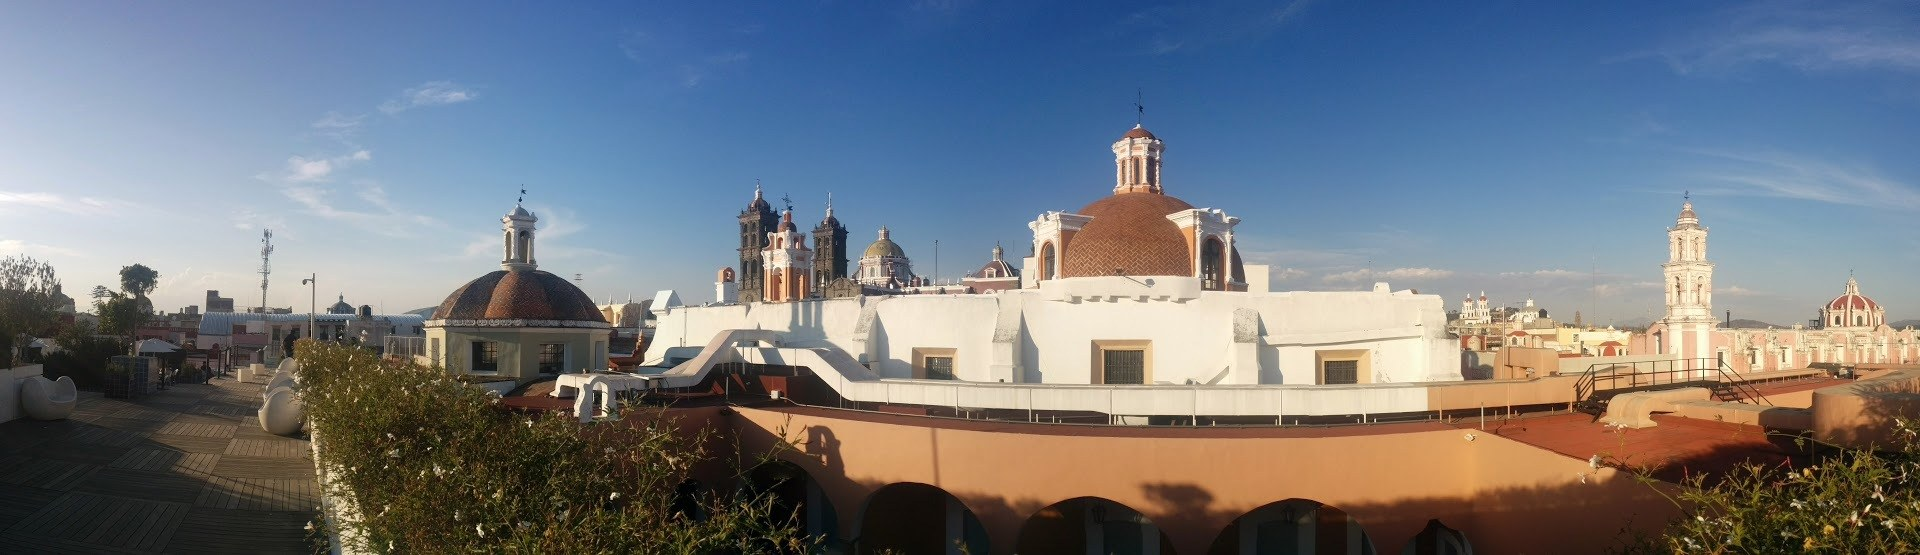 Rooftop view of Puebla